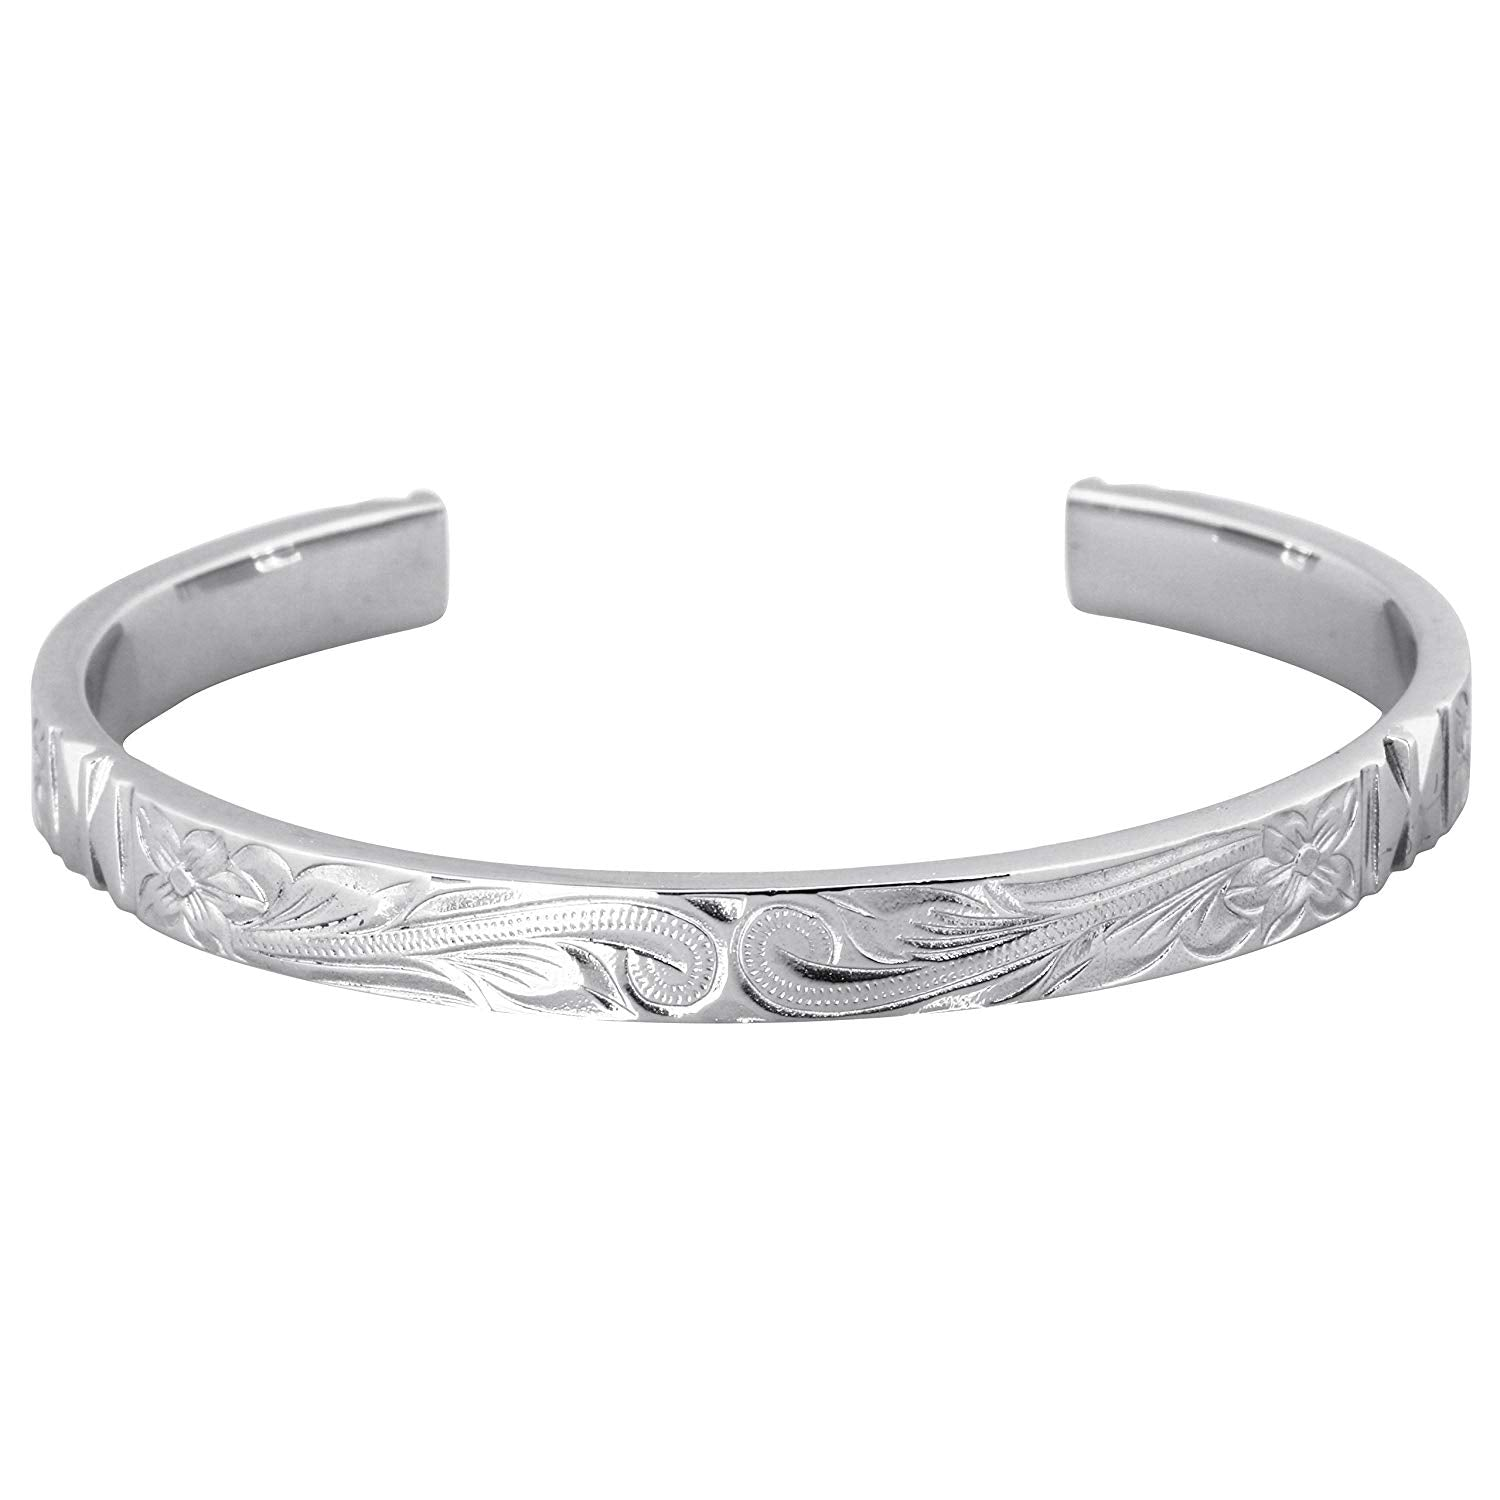 Bangle Bracelet Hawaiian Style by Austaras - for Men and Women